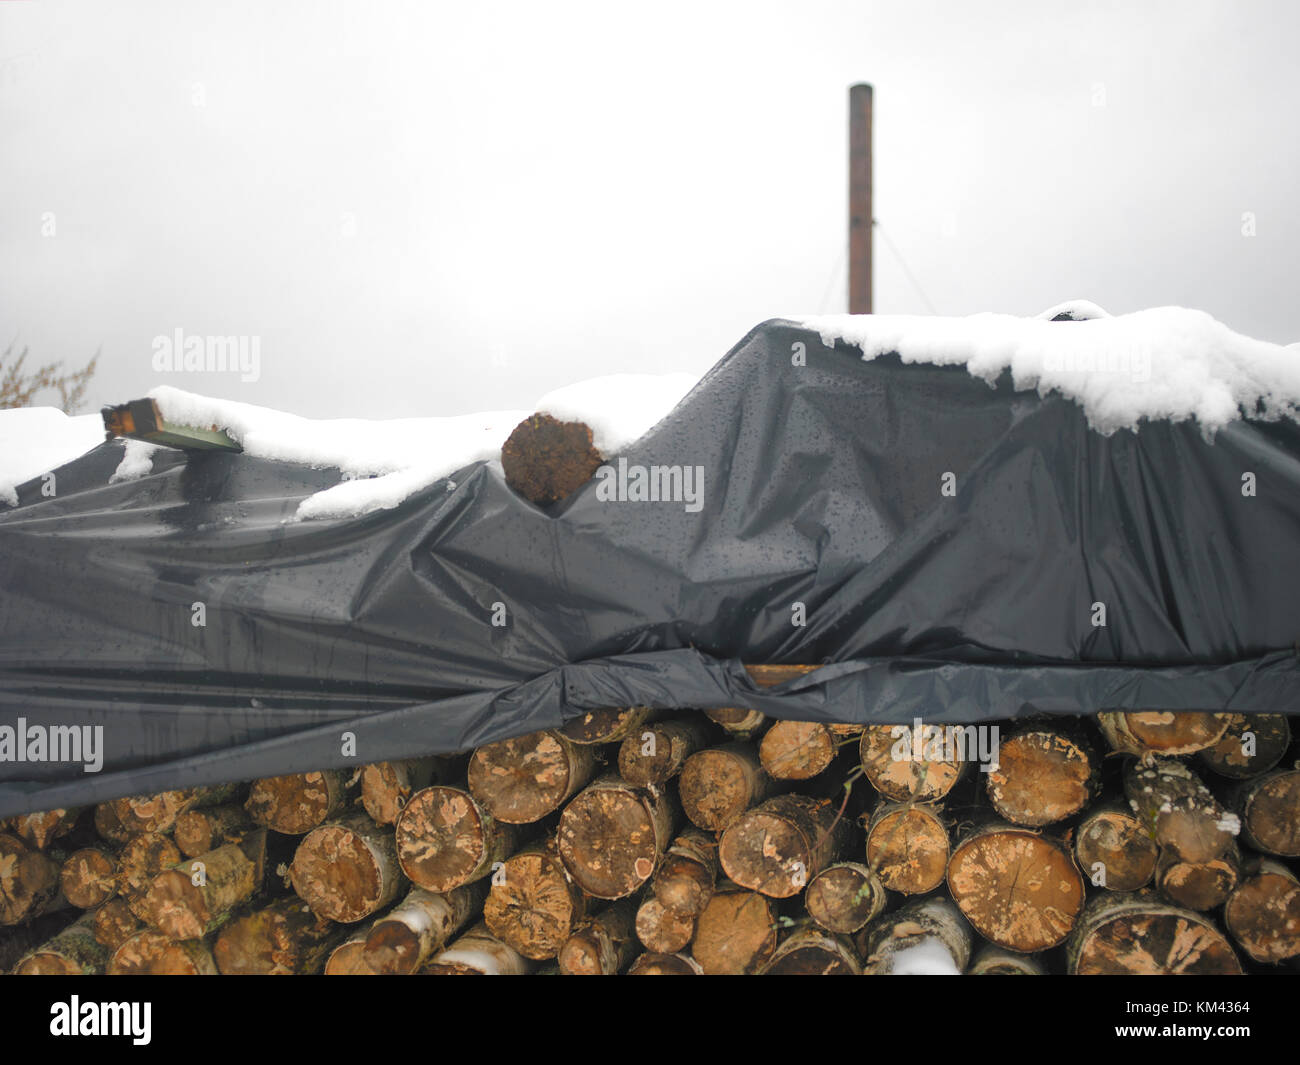 A Stack Of Firewood Covered With Cellophane Wrap And A